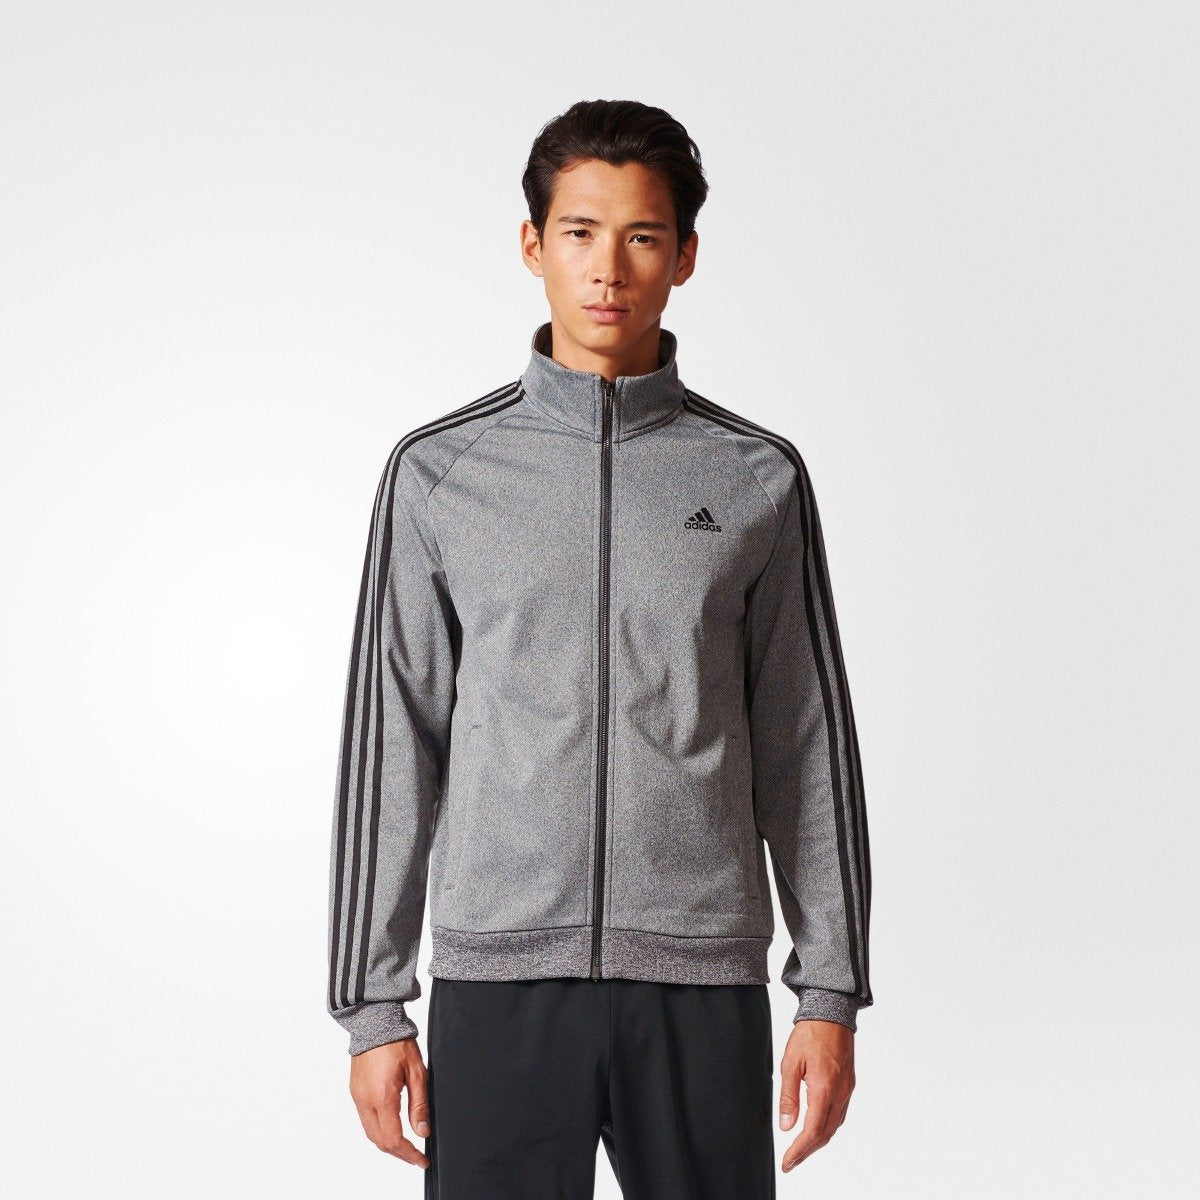 99865a08786c4 Men s Adidas Athletics Essentials Track Jacket Gray CD8752